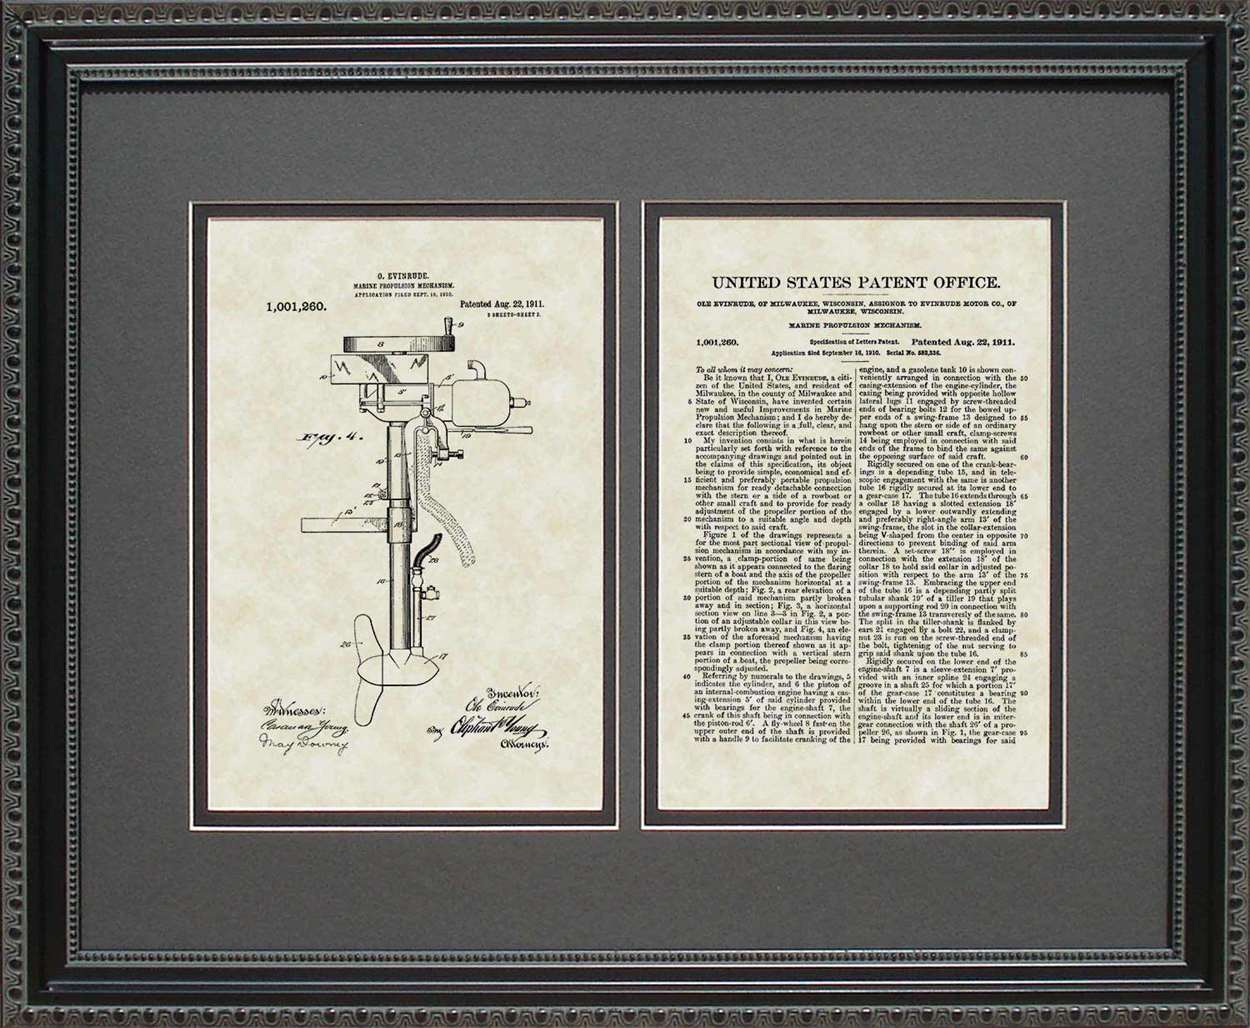 Outboard/Boat Motor Patent, Art & Copy, Evinrude, 1911, 16x20